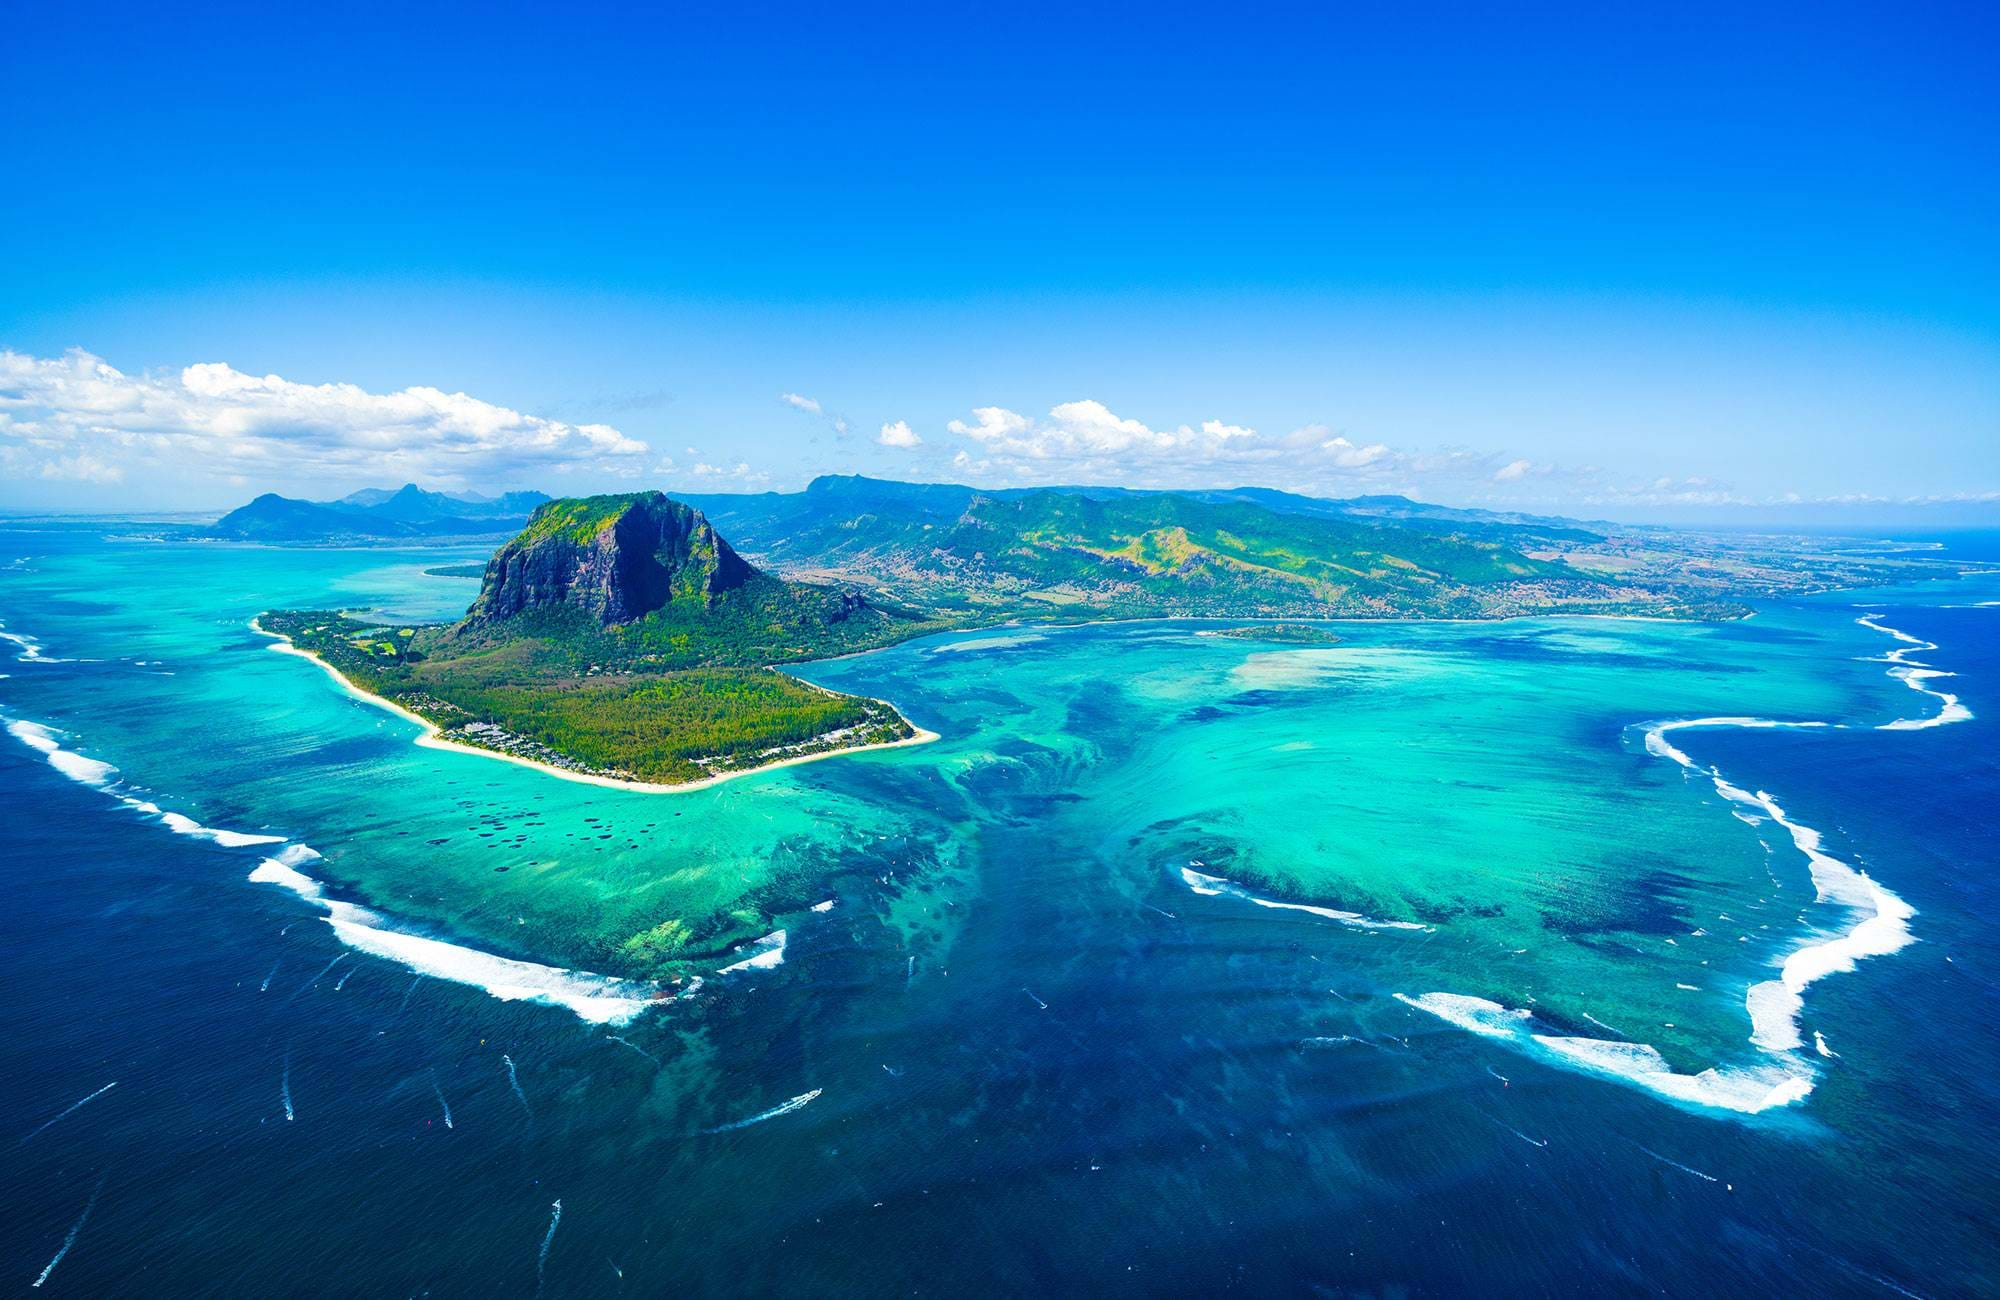 mauritius-africa-aerial-view-le-morne-brabant-mpountain